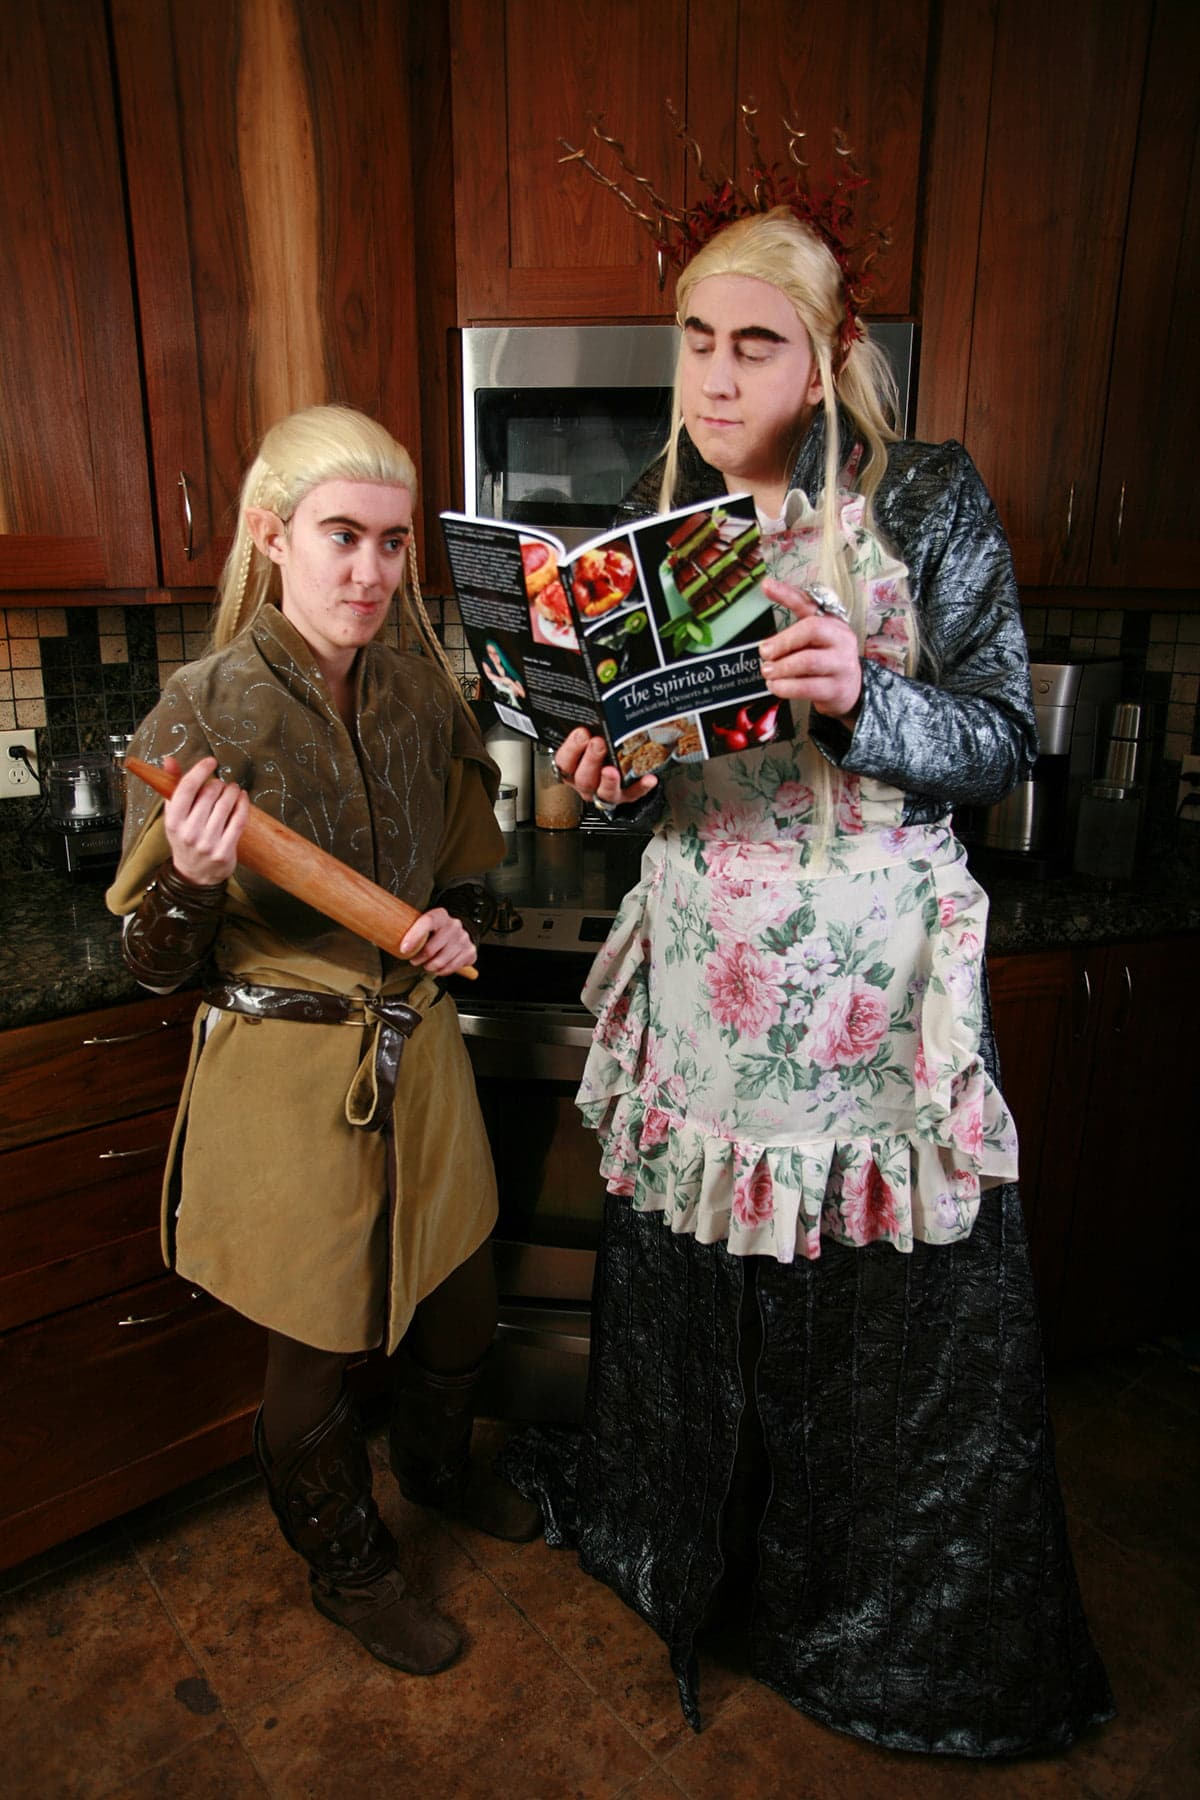 Cosplayers dressed as Thranduil and Legolas are in the kitchen, reading a cookbook.